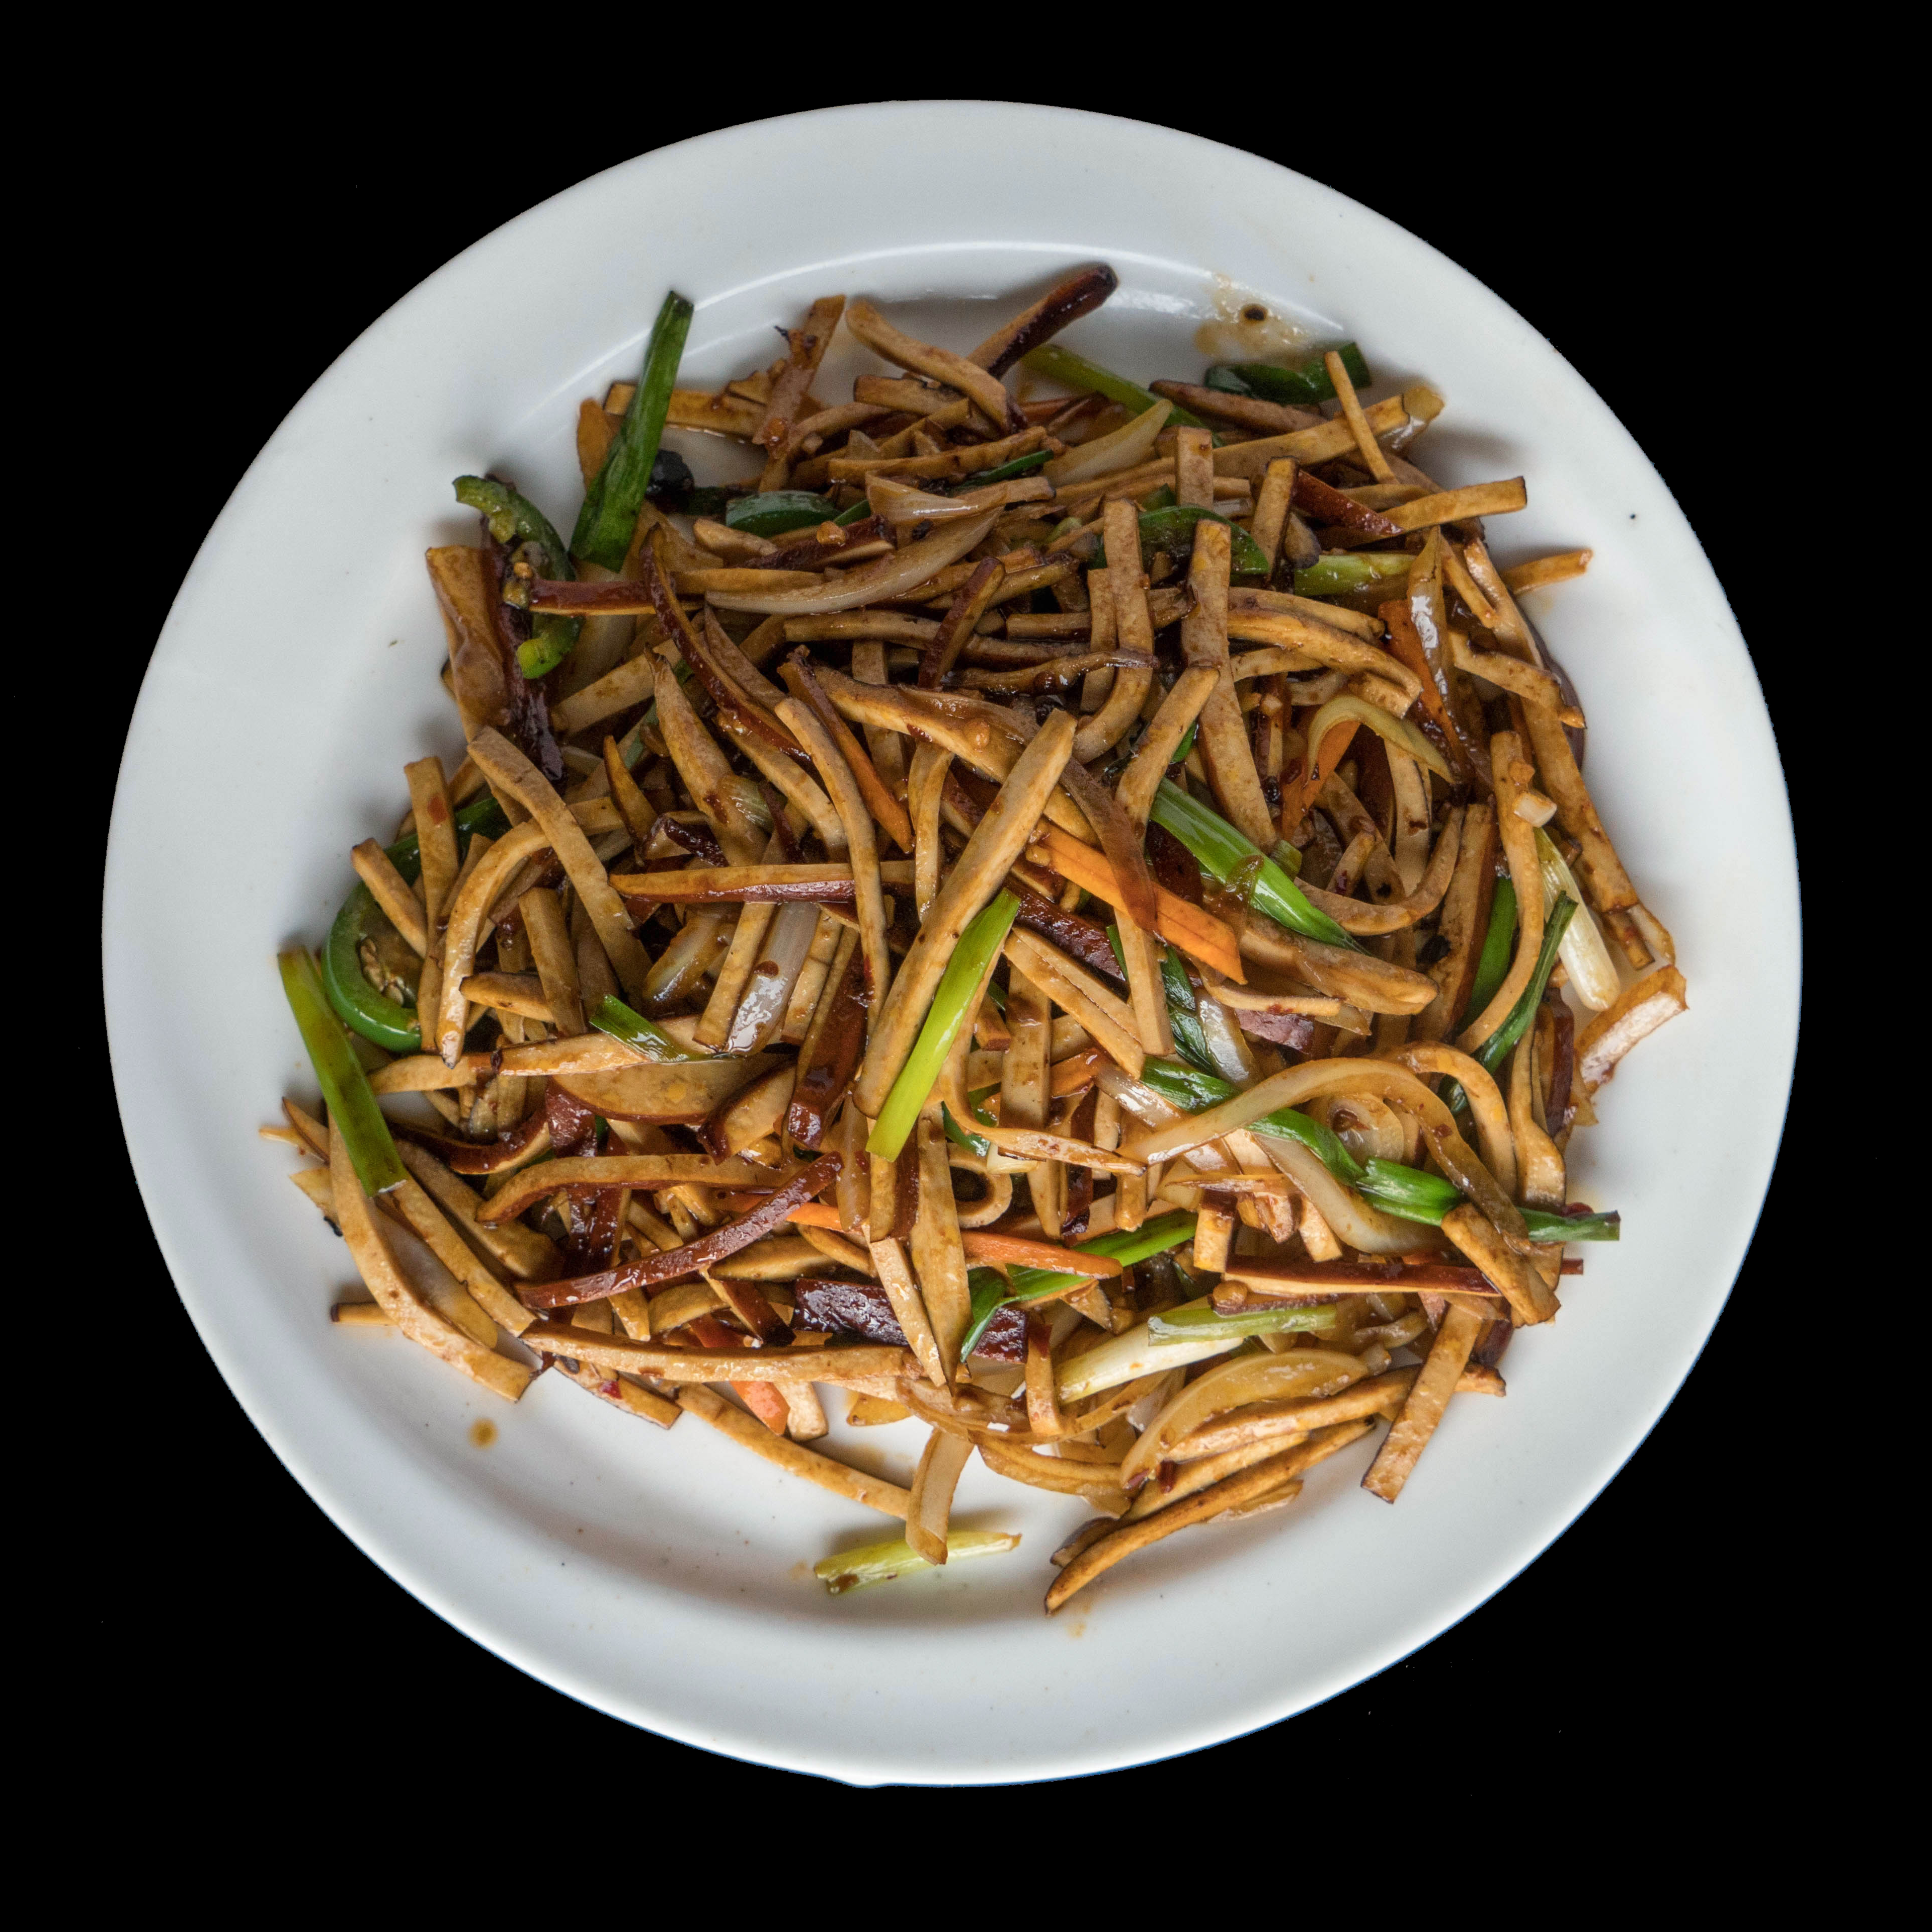 64. 辣炒豆干 Spicy Bean Sauce wok Shredded Bean Curd